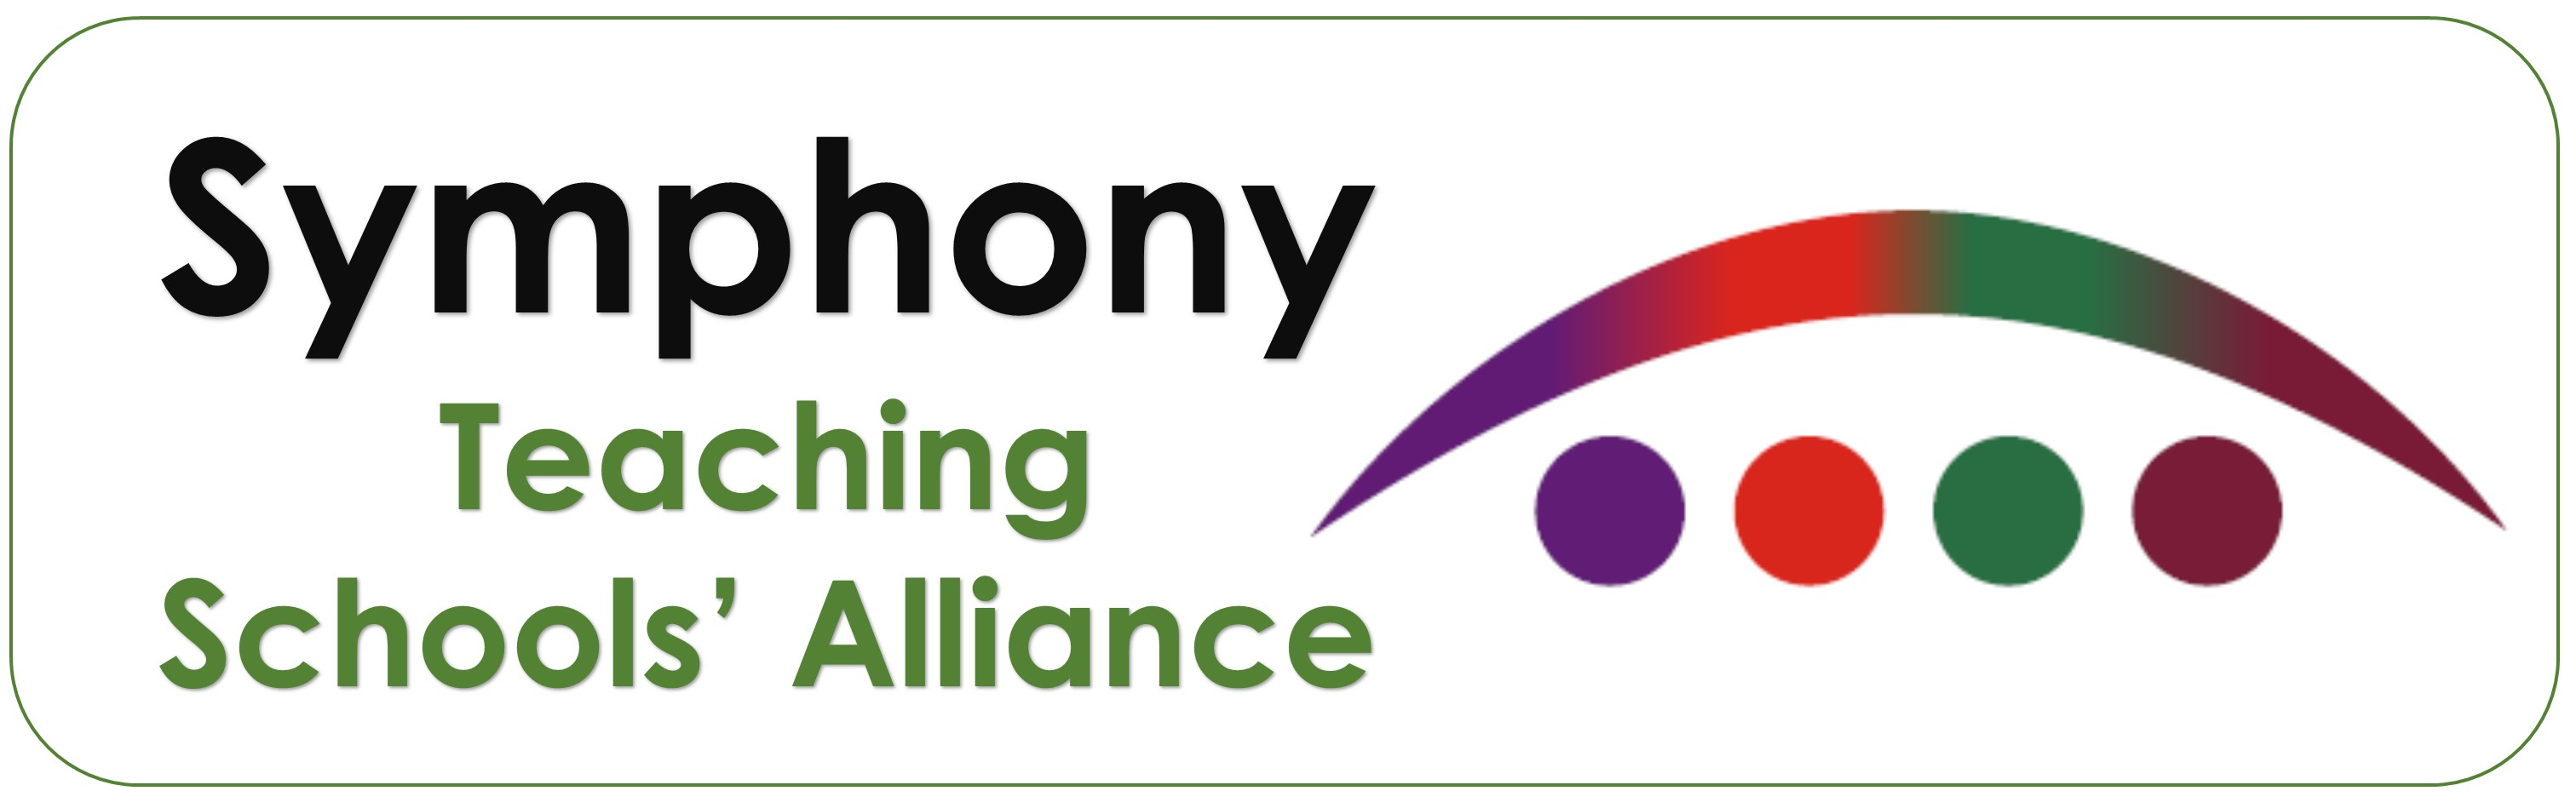 Symphony Teaching Schools' Alliance